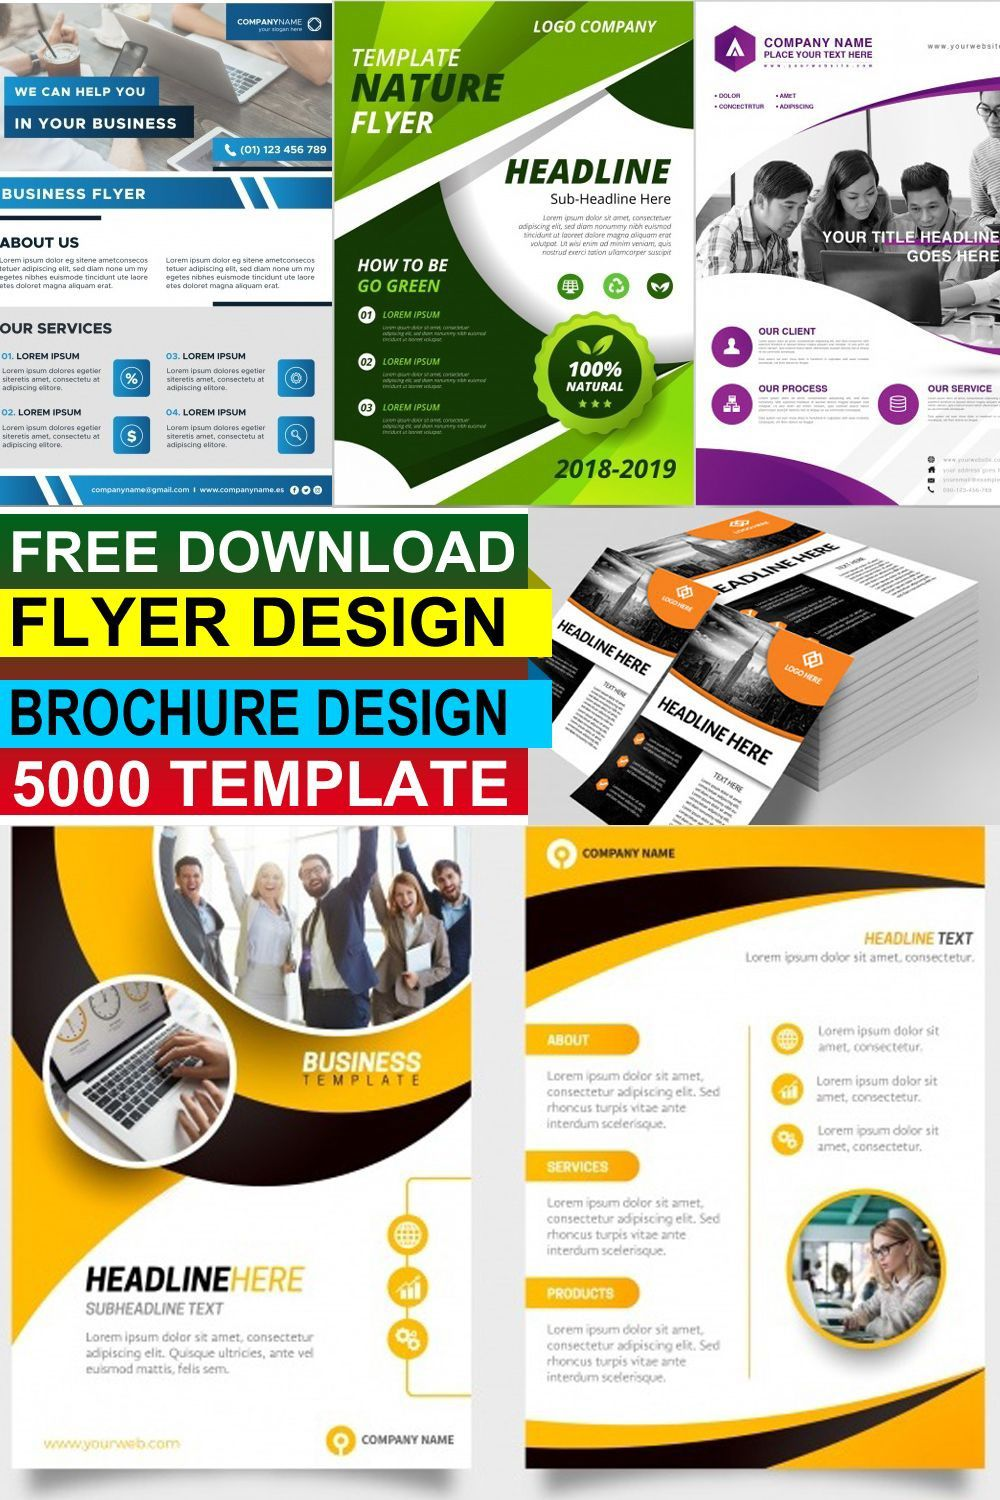 000 Fascinating Free Printable Flyer Template Highest Quality  Templates Christma Word DaycareFull